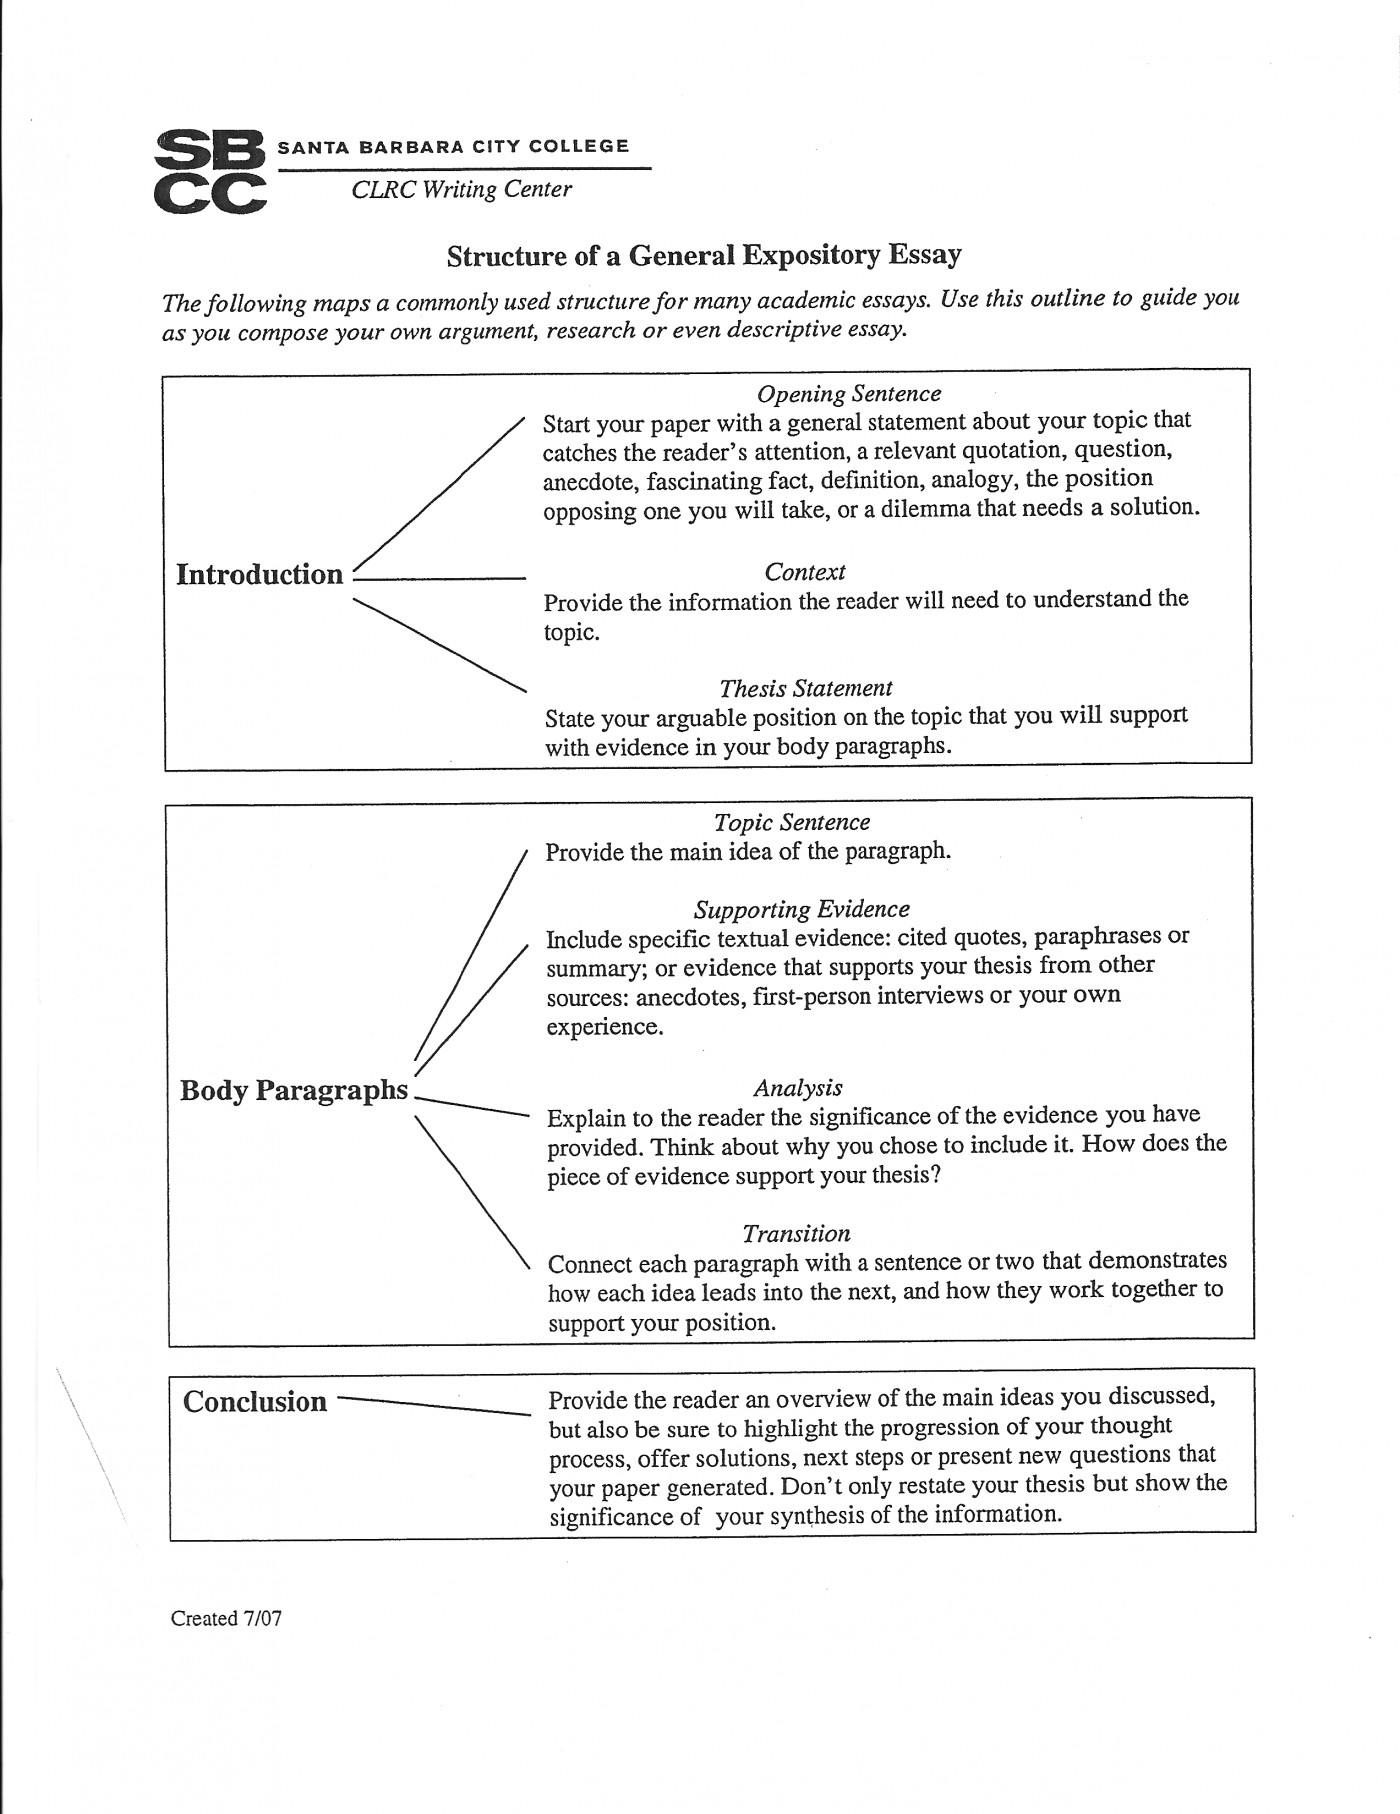 006 Informative Essay Dreaded Outline Template Pdf Topics For 5th Grade Rubric Fsa 1400